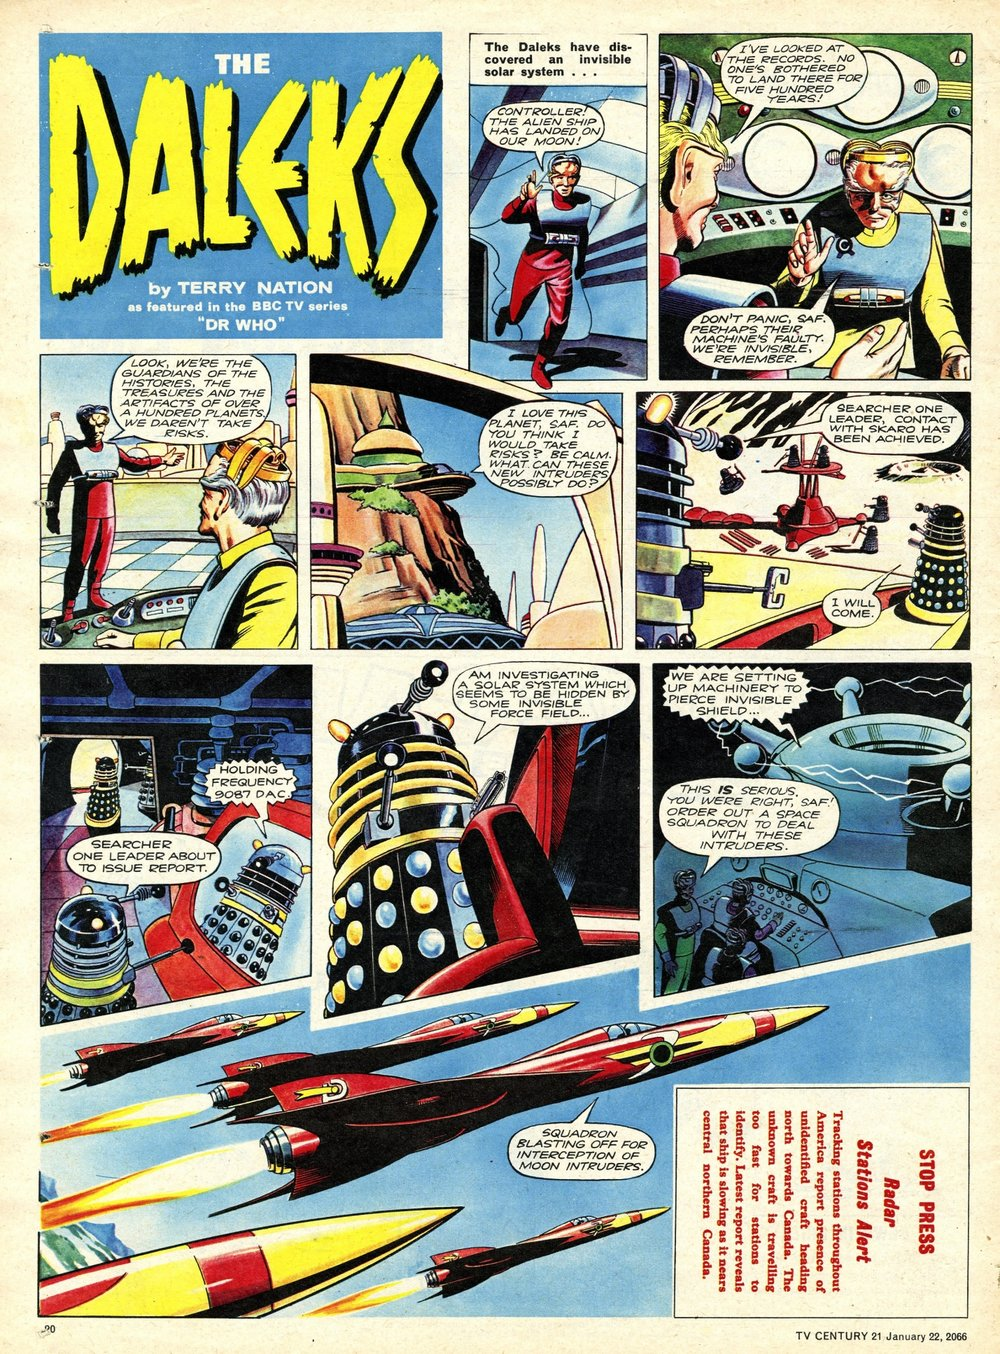 TV Century 21, no. 53, 22 January 2066 (1966), showing new masthead for the Dalek strip